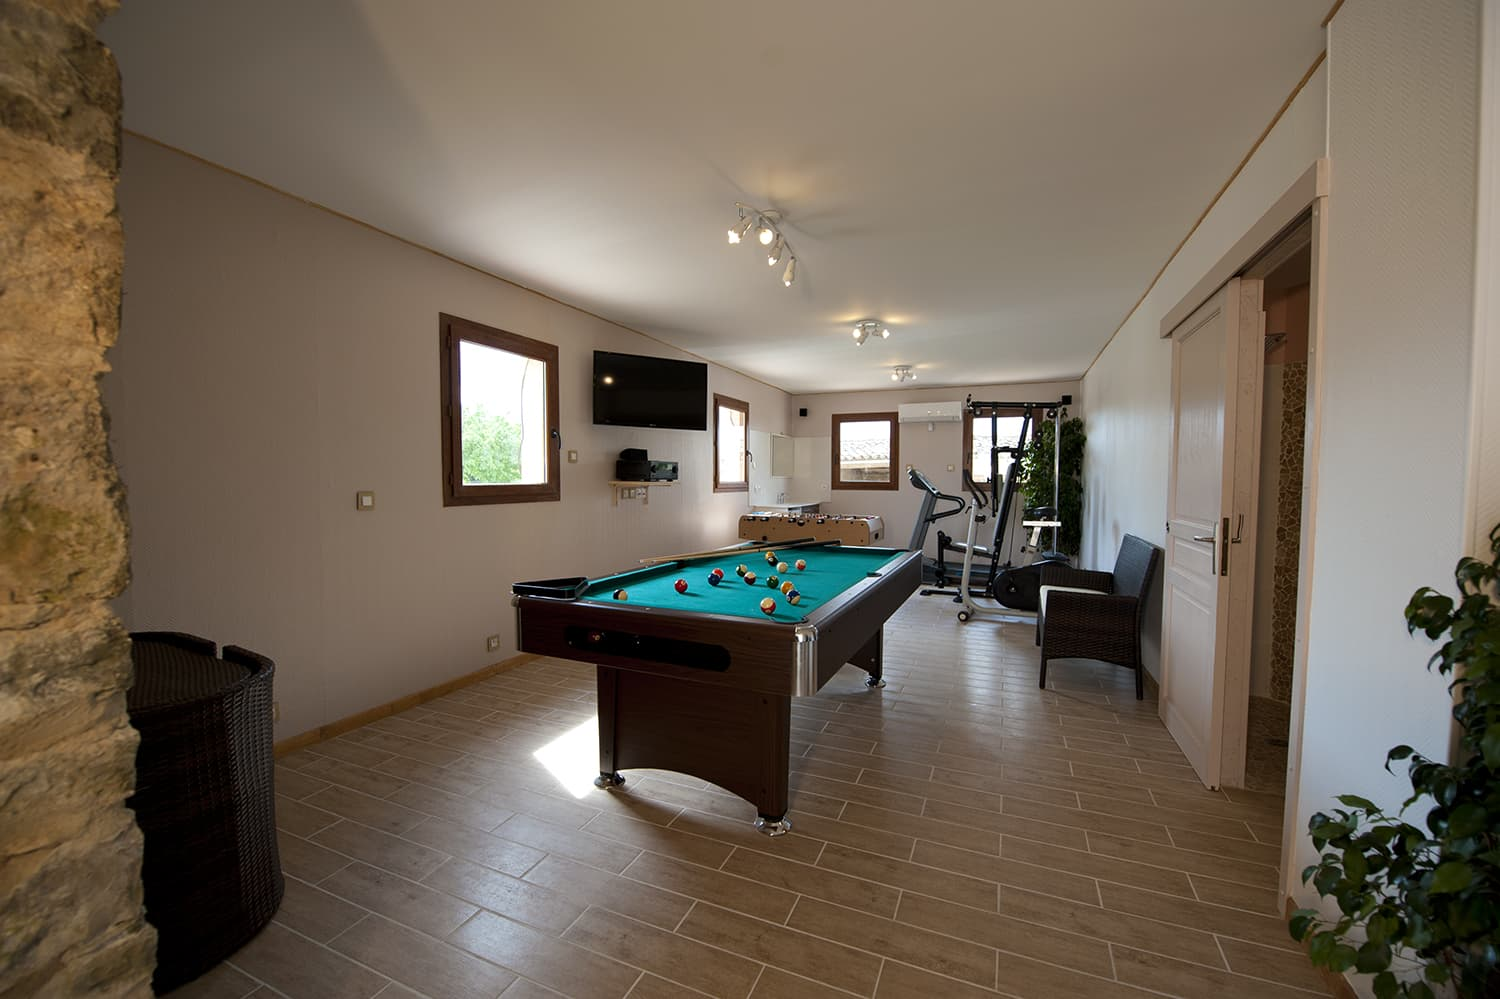 Games room with jacuzzi, sauna, exercise bike, treadmill and weights machine